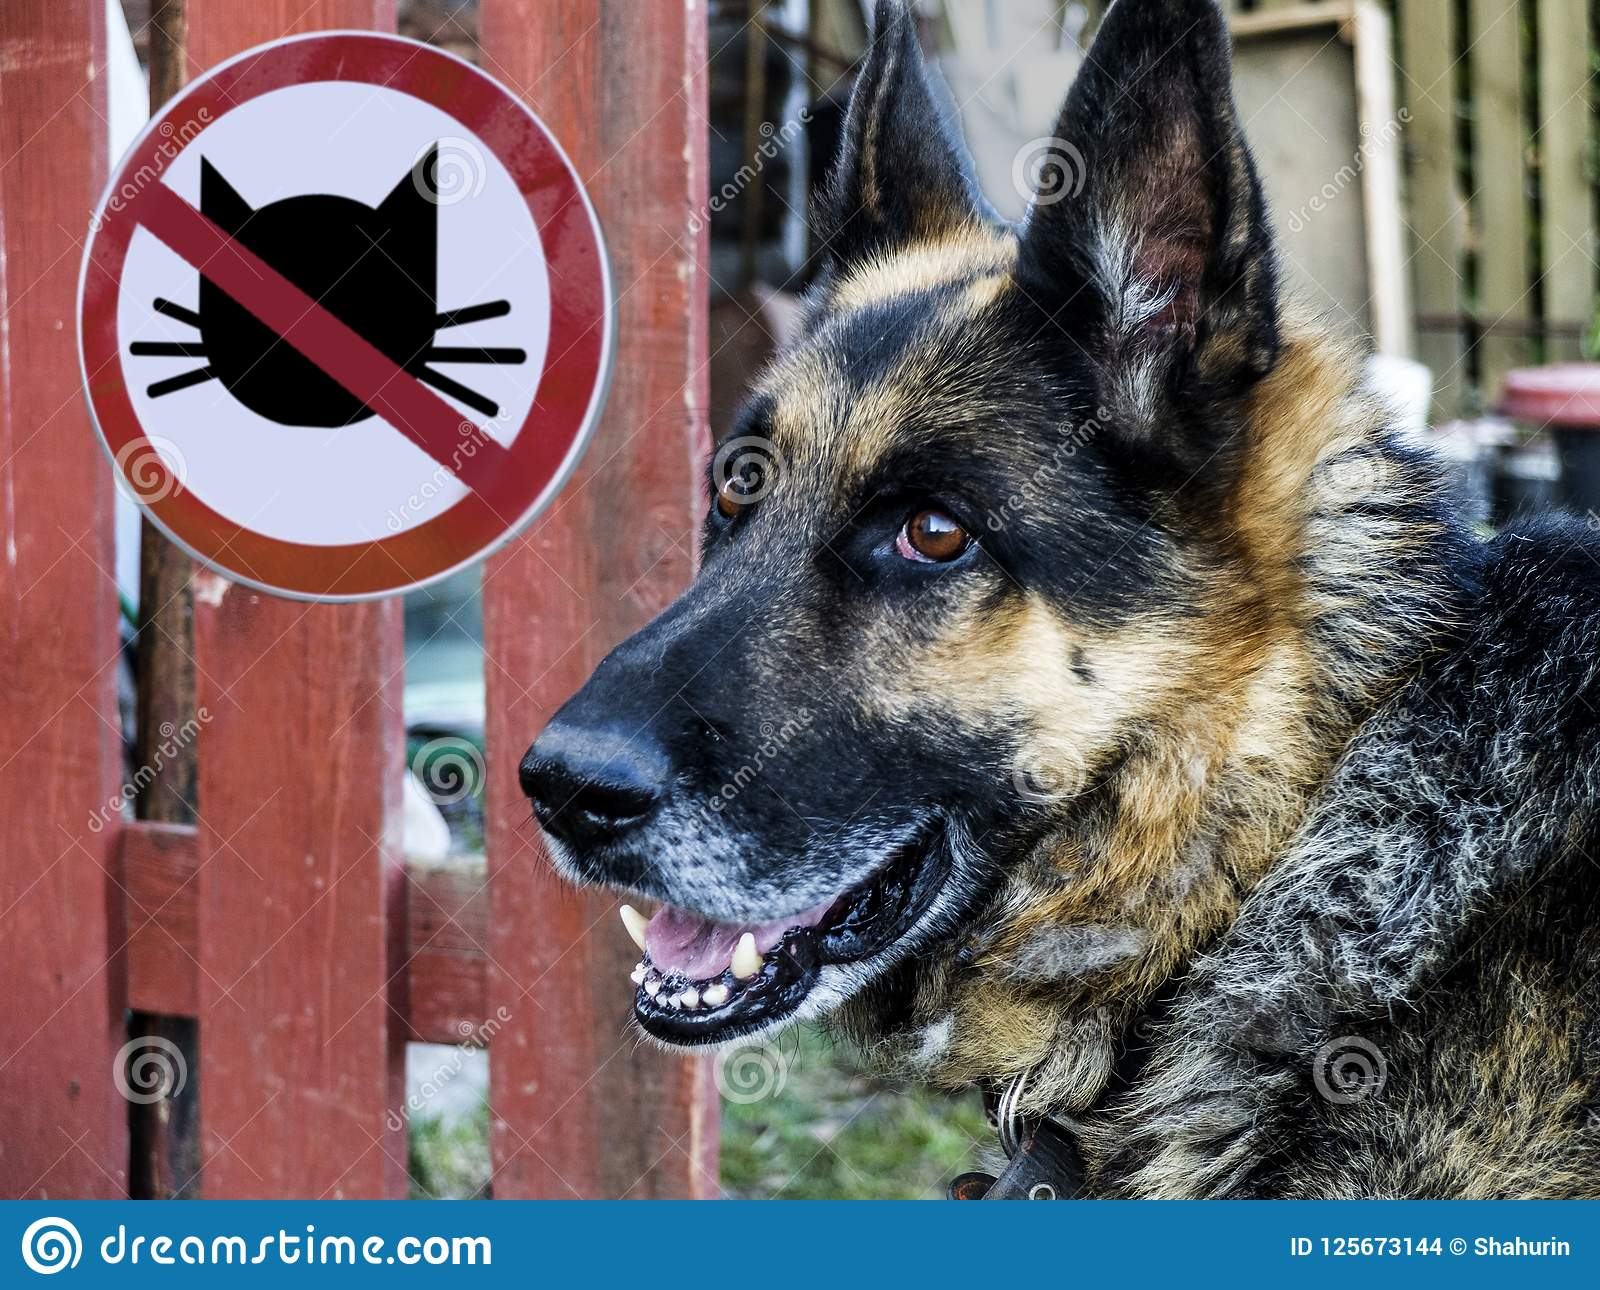 German shepherd on the background of the sign no entry cats.